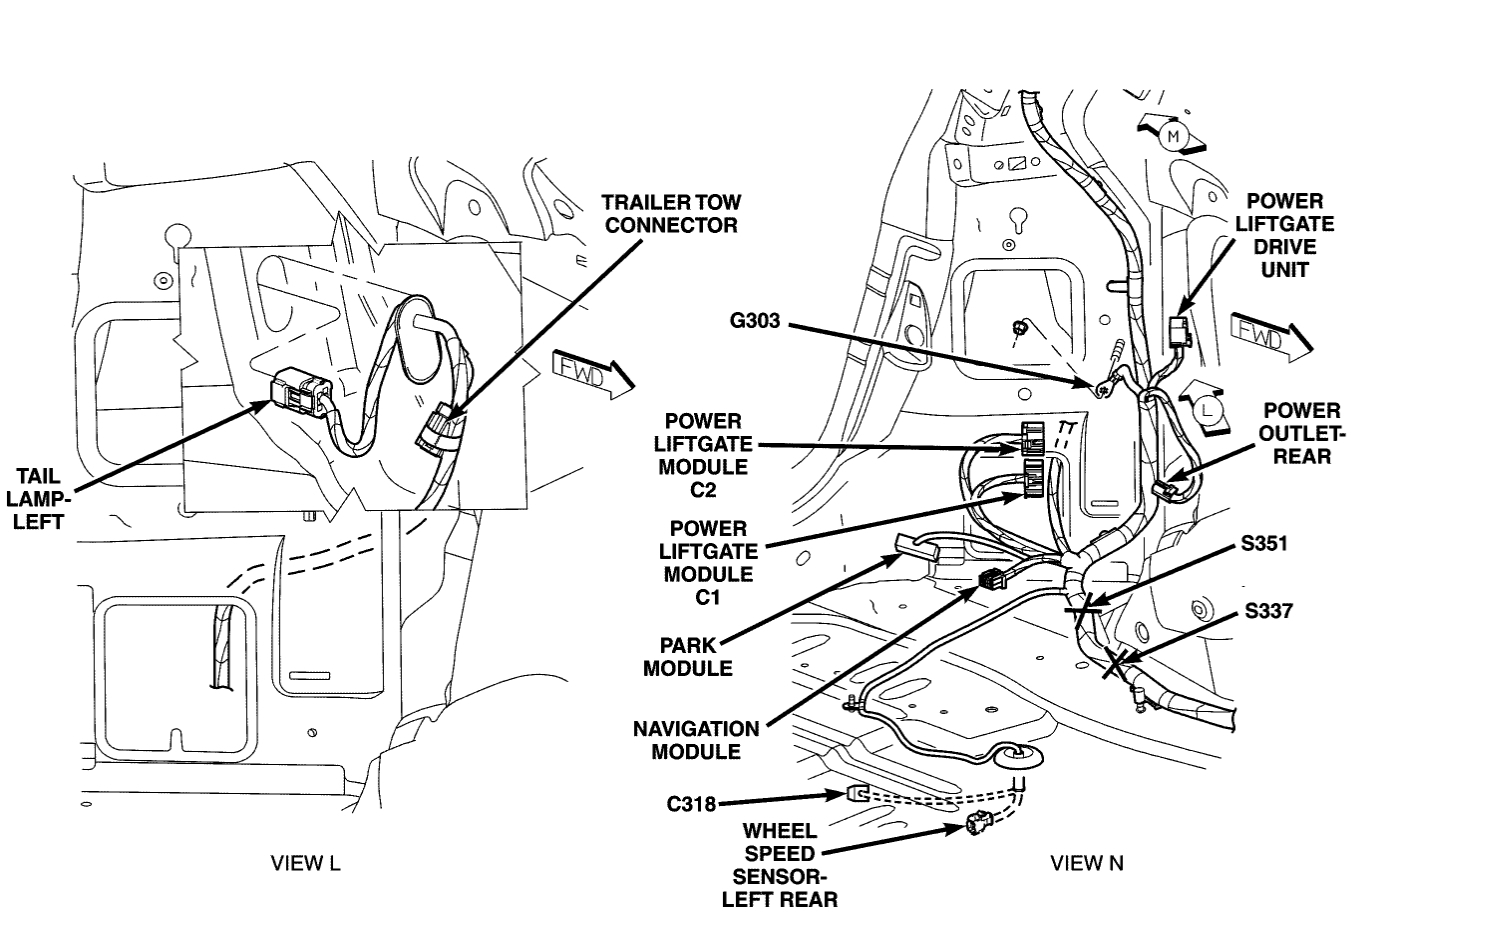 here is the original wiring diagram